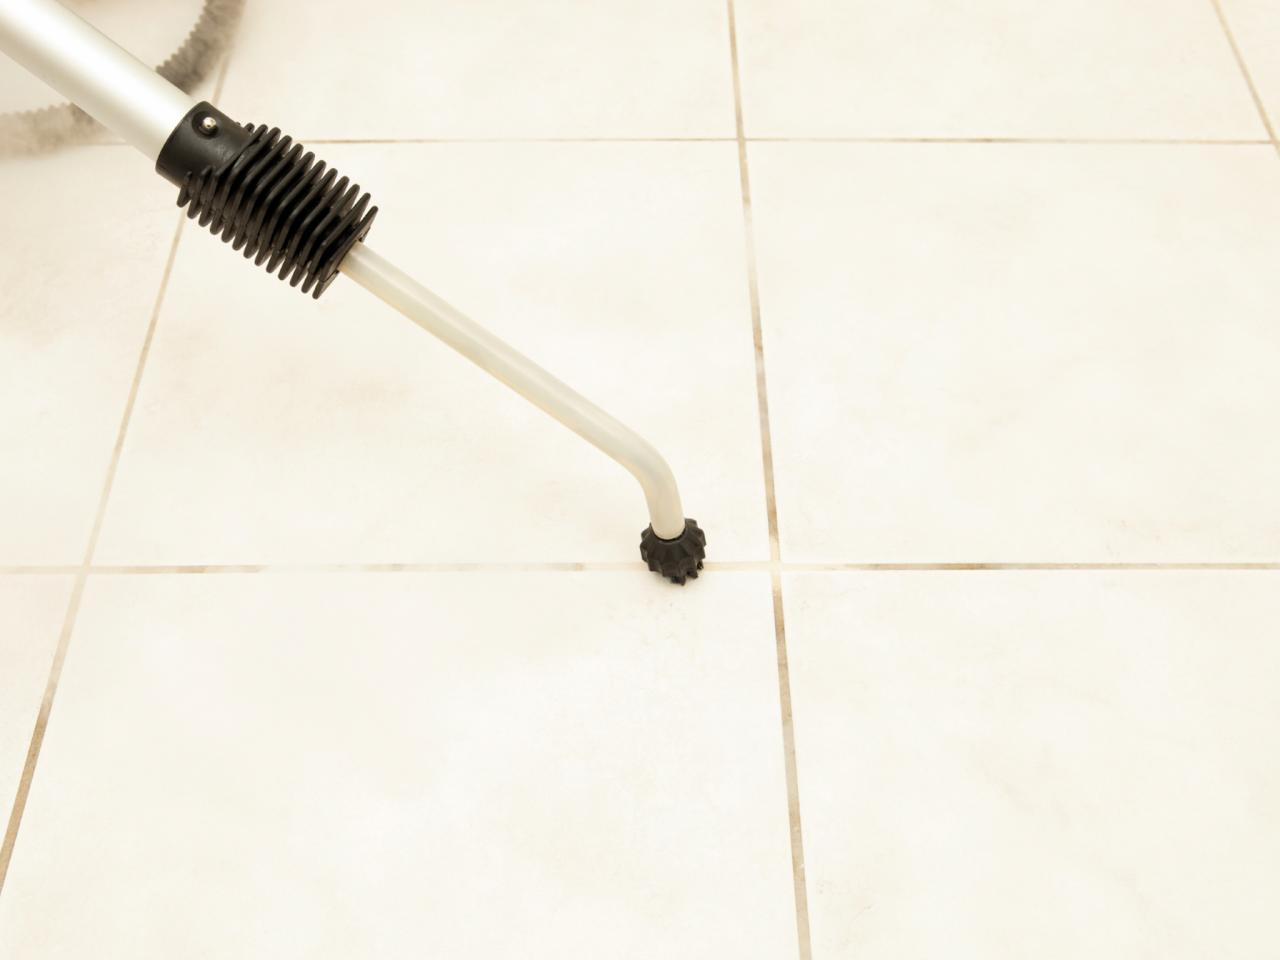 How To Clean Grout DIY - How to clean bathroom floor tile grout